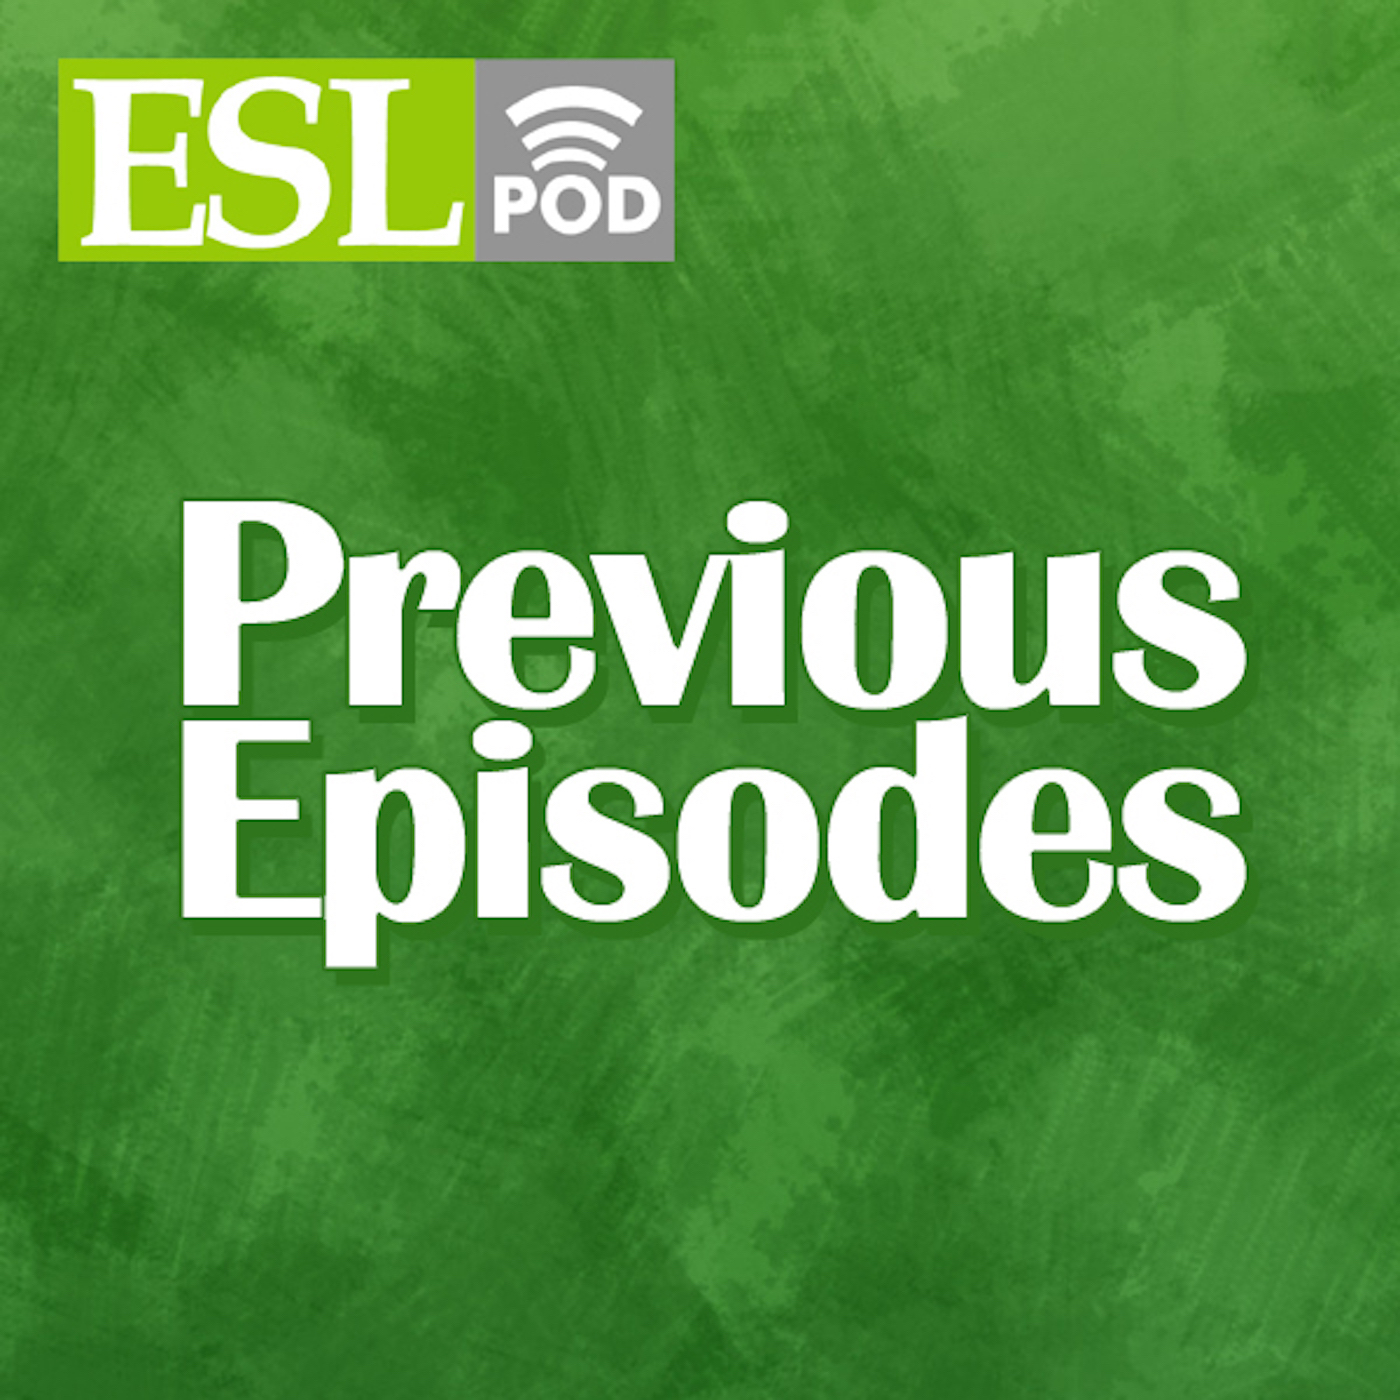 ESL Podcast - Previous Episodes